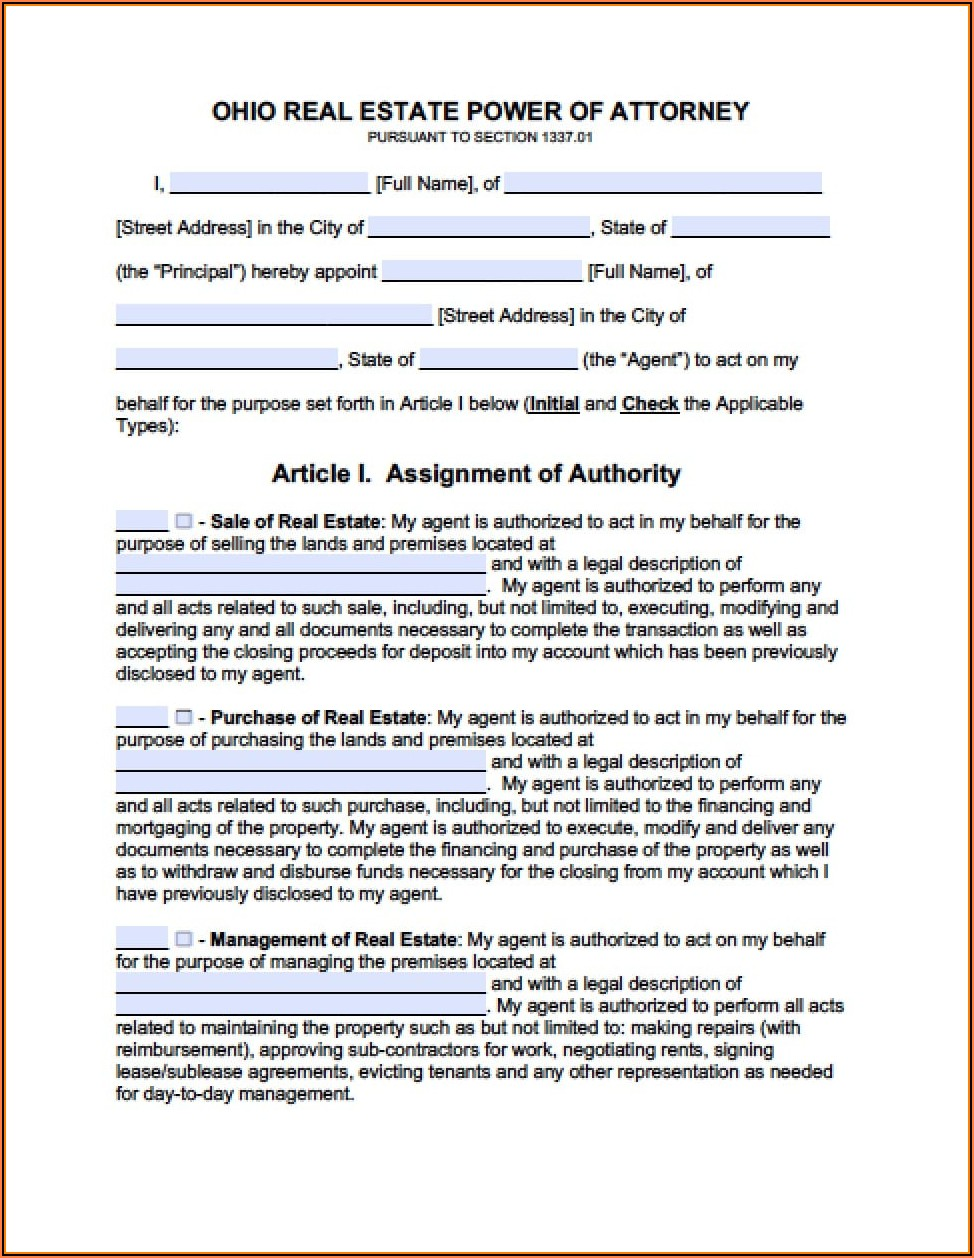 Financial Power Of Attorney Ohio Printable Form